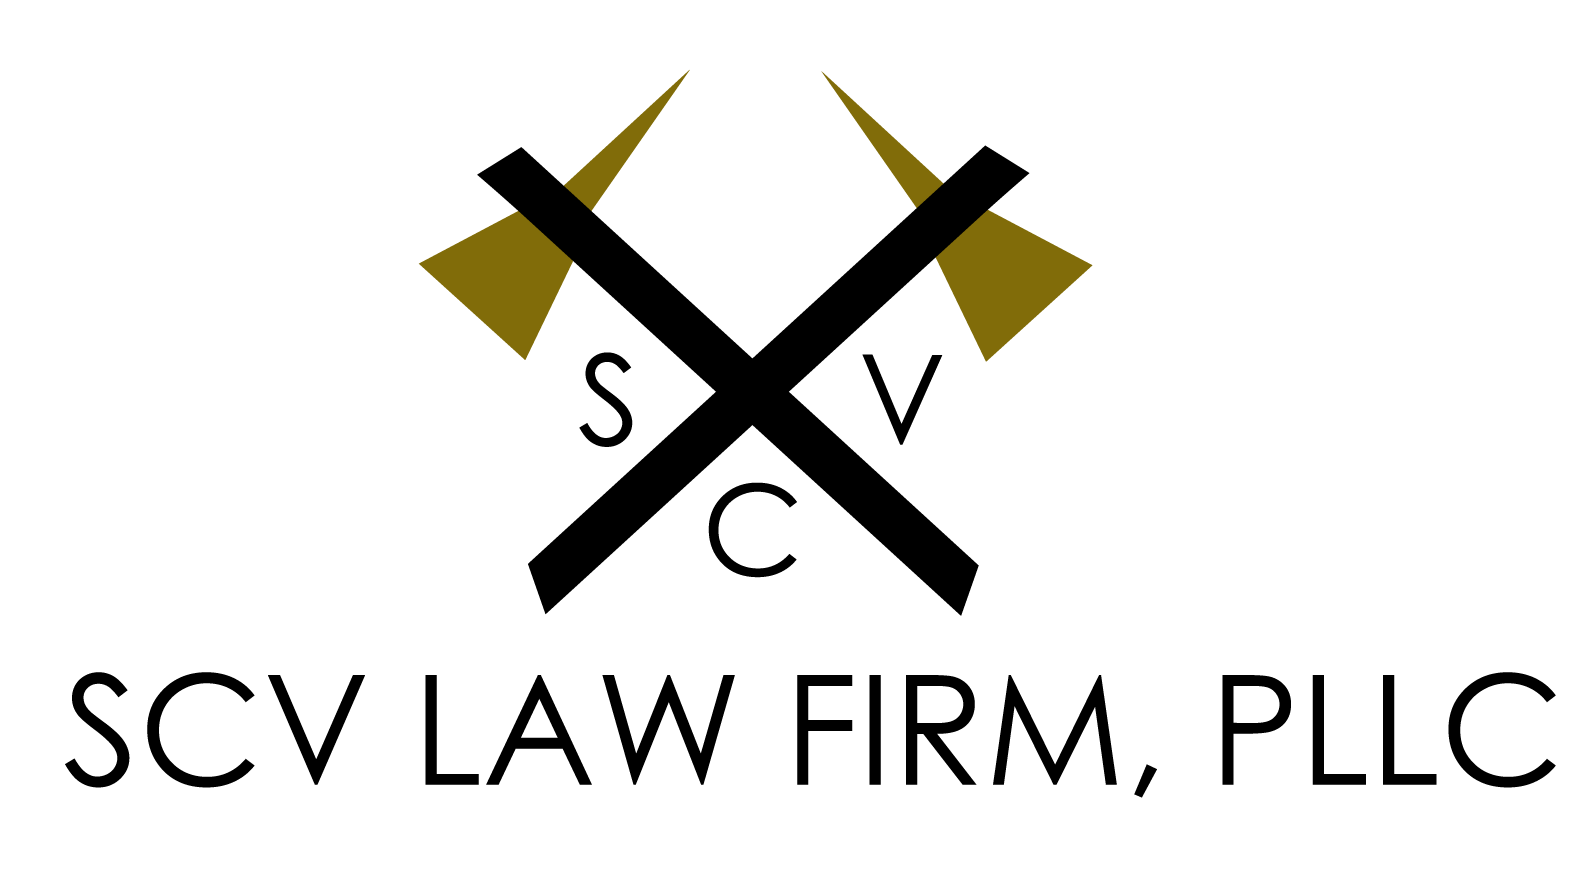 About Scv Law Firm Pllc